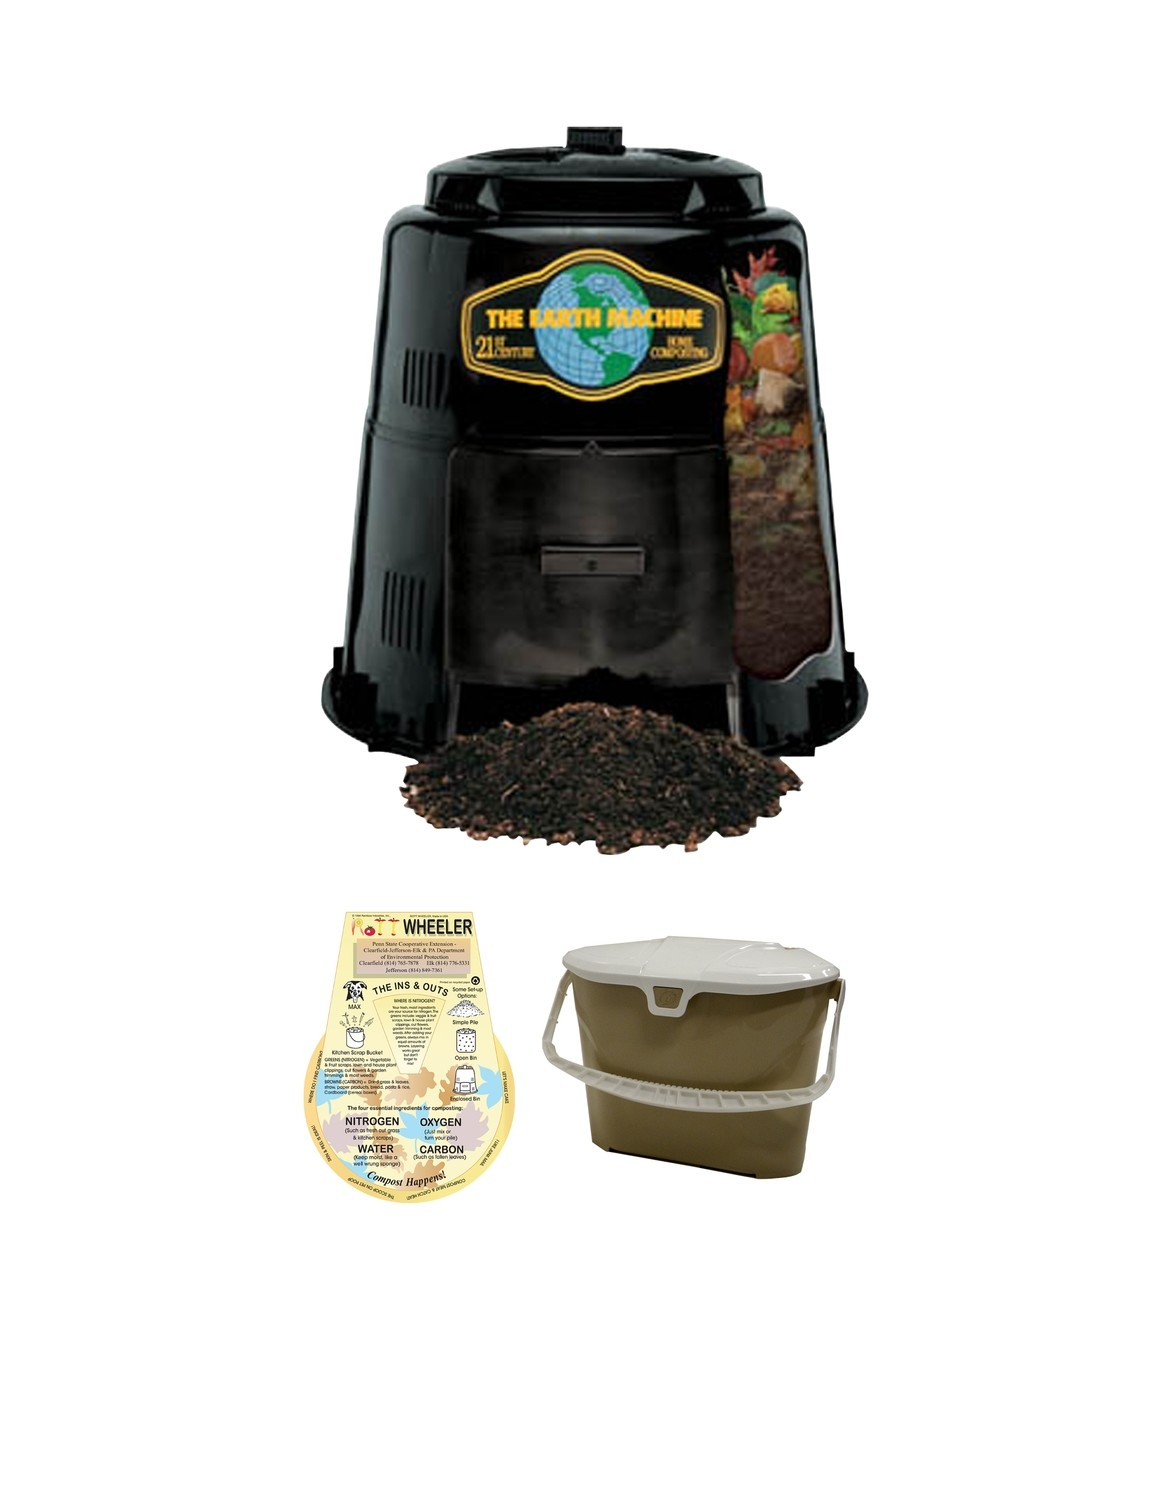 KIT 1: Earth Machine Composter *Includes Rottwheeler & Tan Kitchen Pail